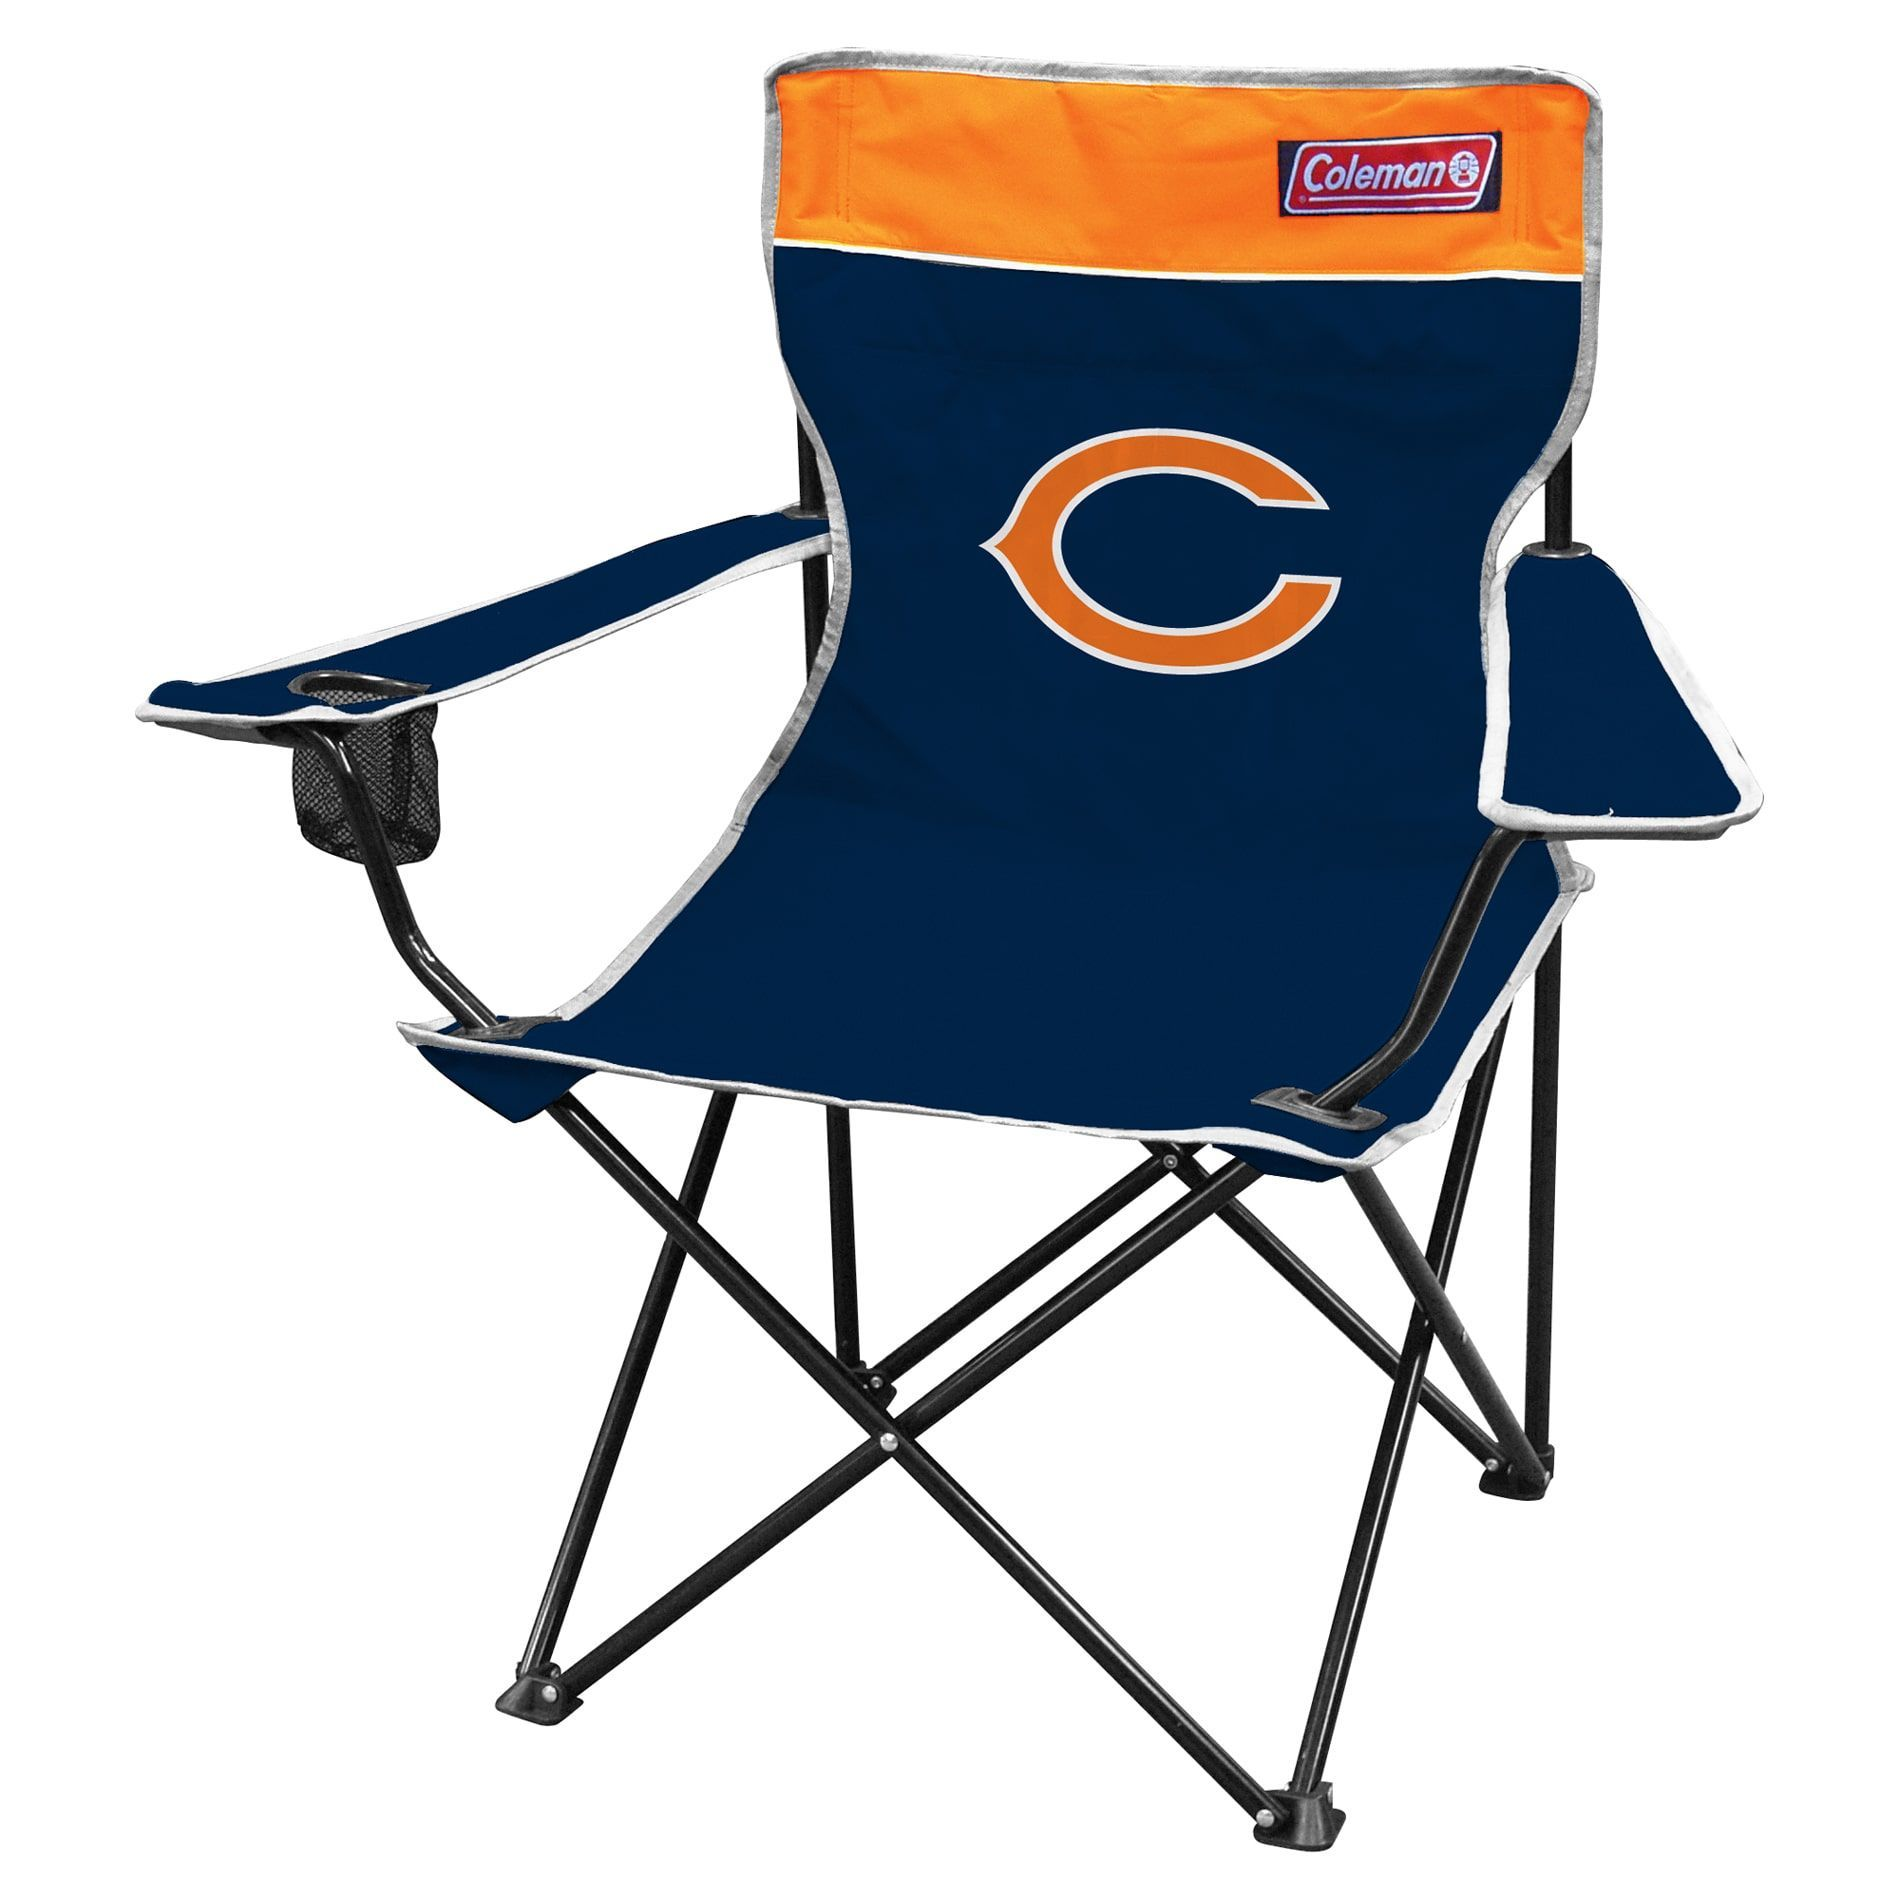 Coleman NFL Chicago Bears Quad Tailgate Chair